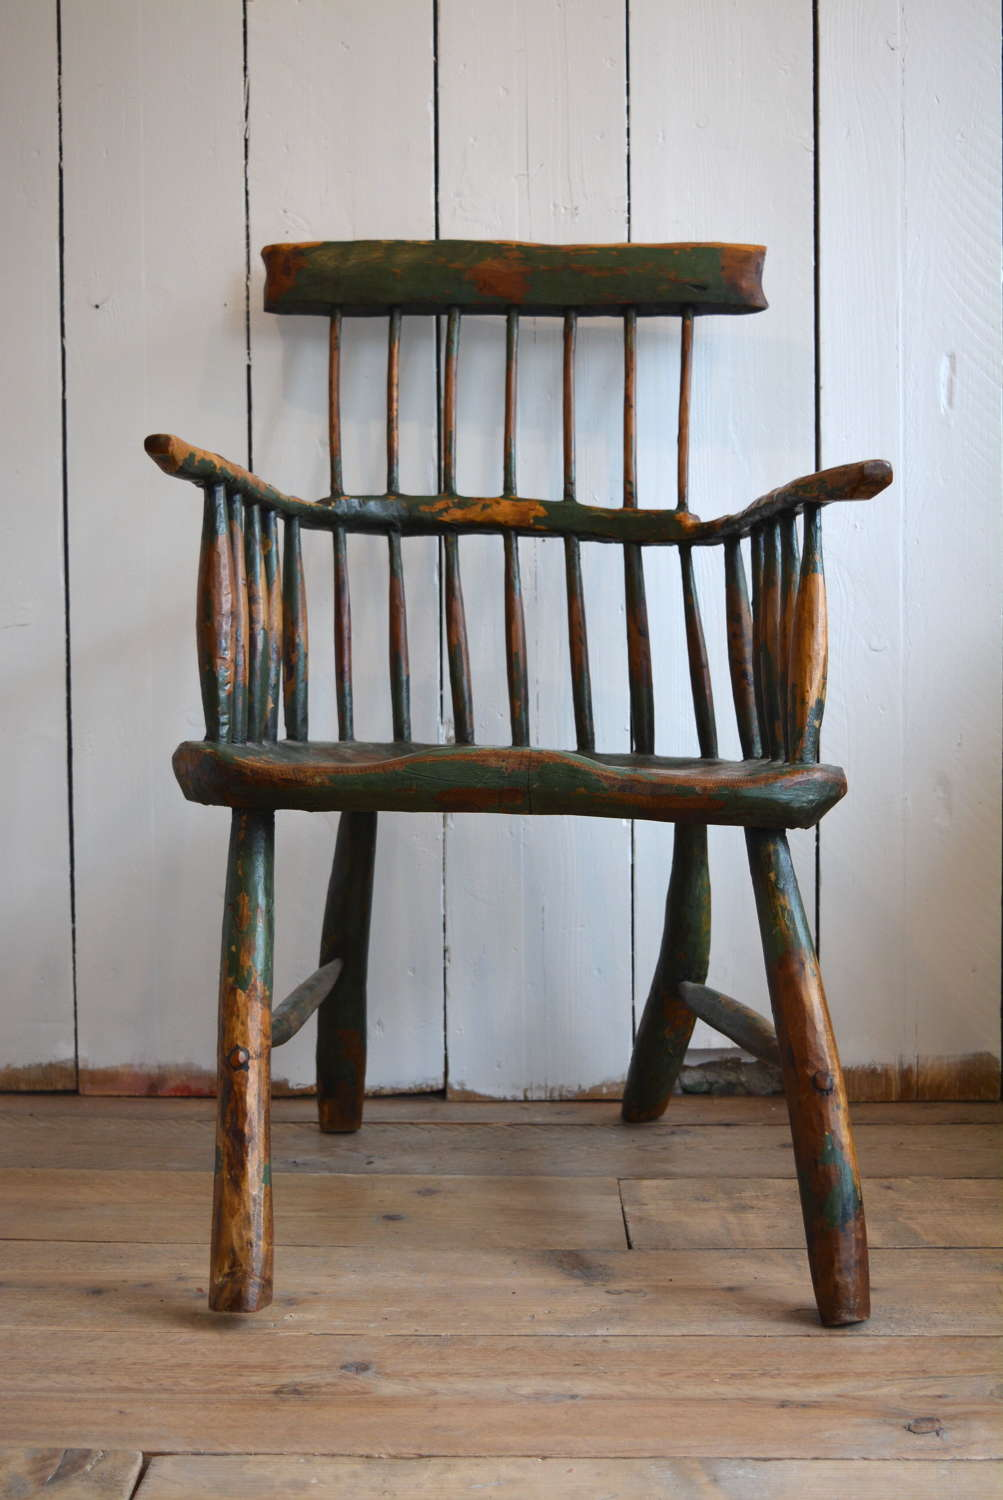 19TH CENTURY WEST COUNTRY STICK BACK CHAIR